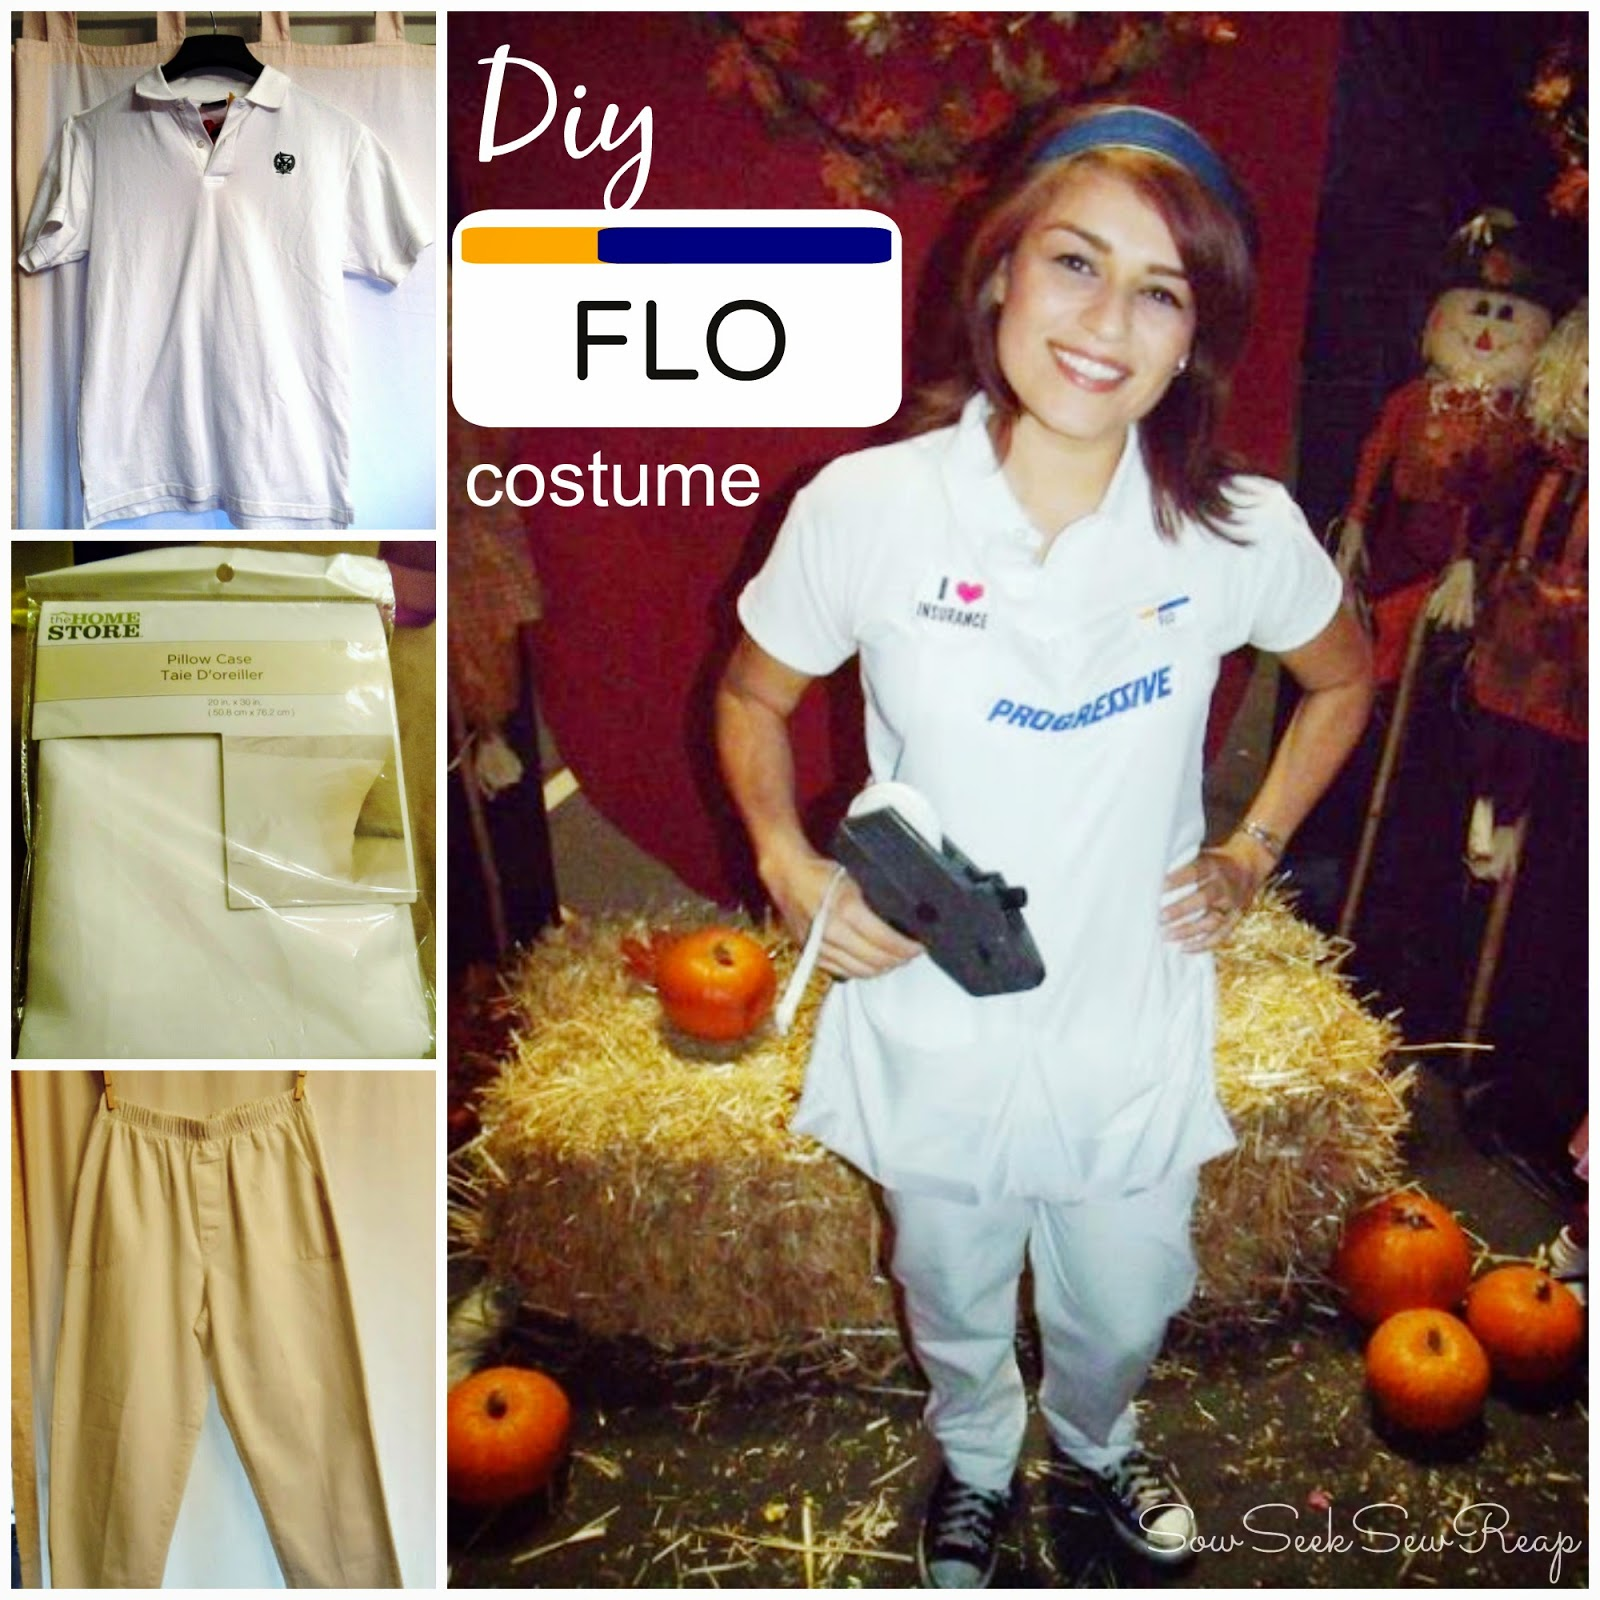 DIY FLO COSTUME, DIY APRON, DIY COSTUME